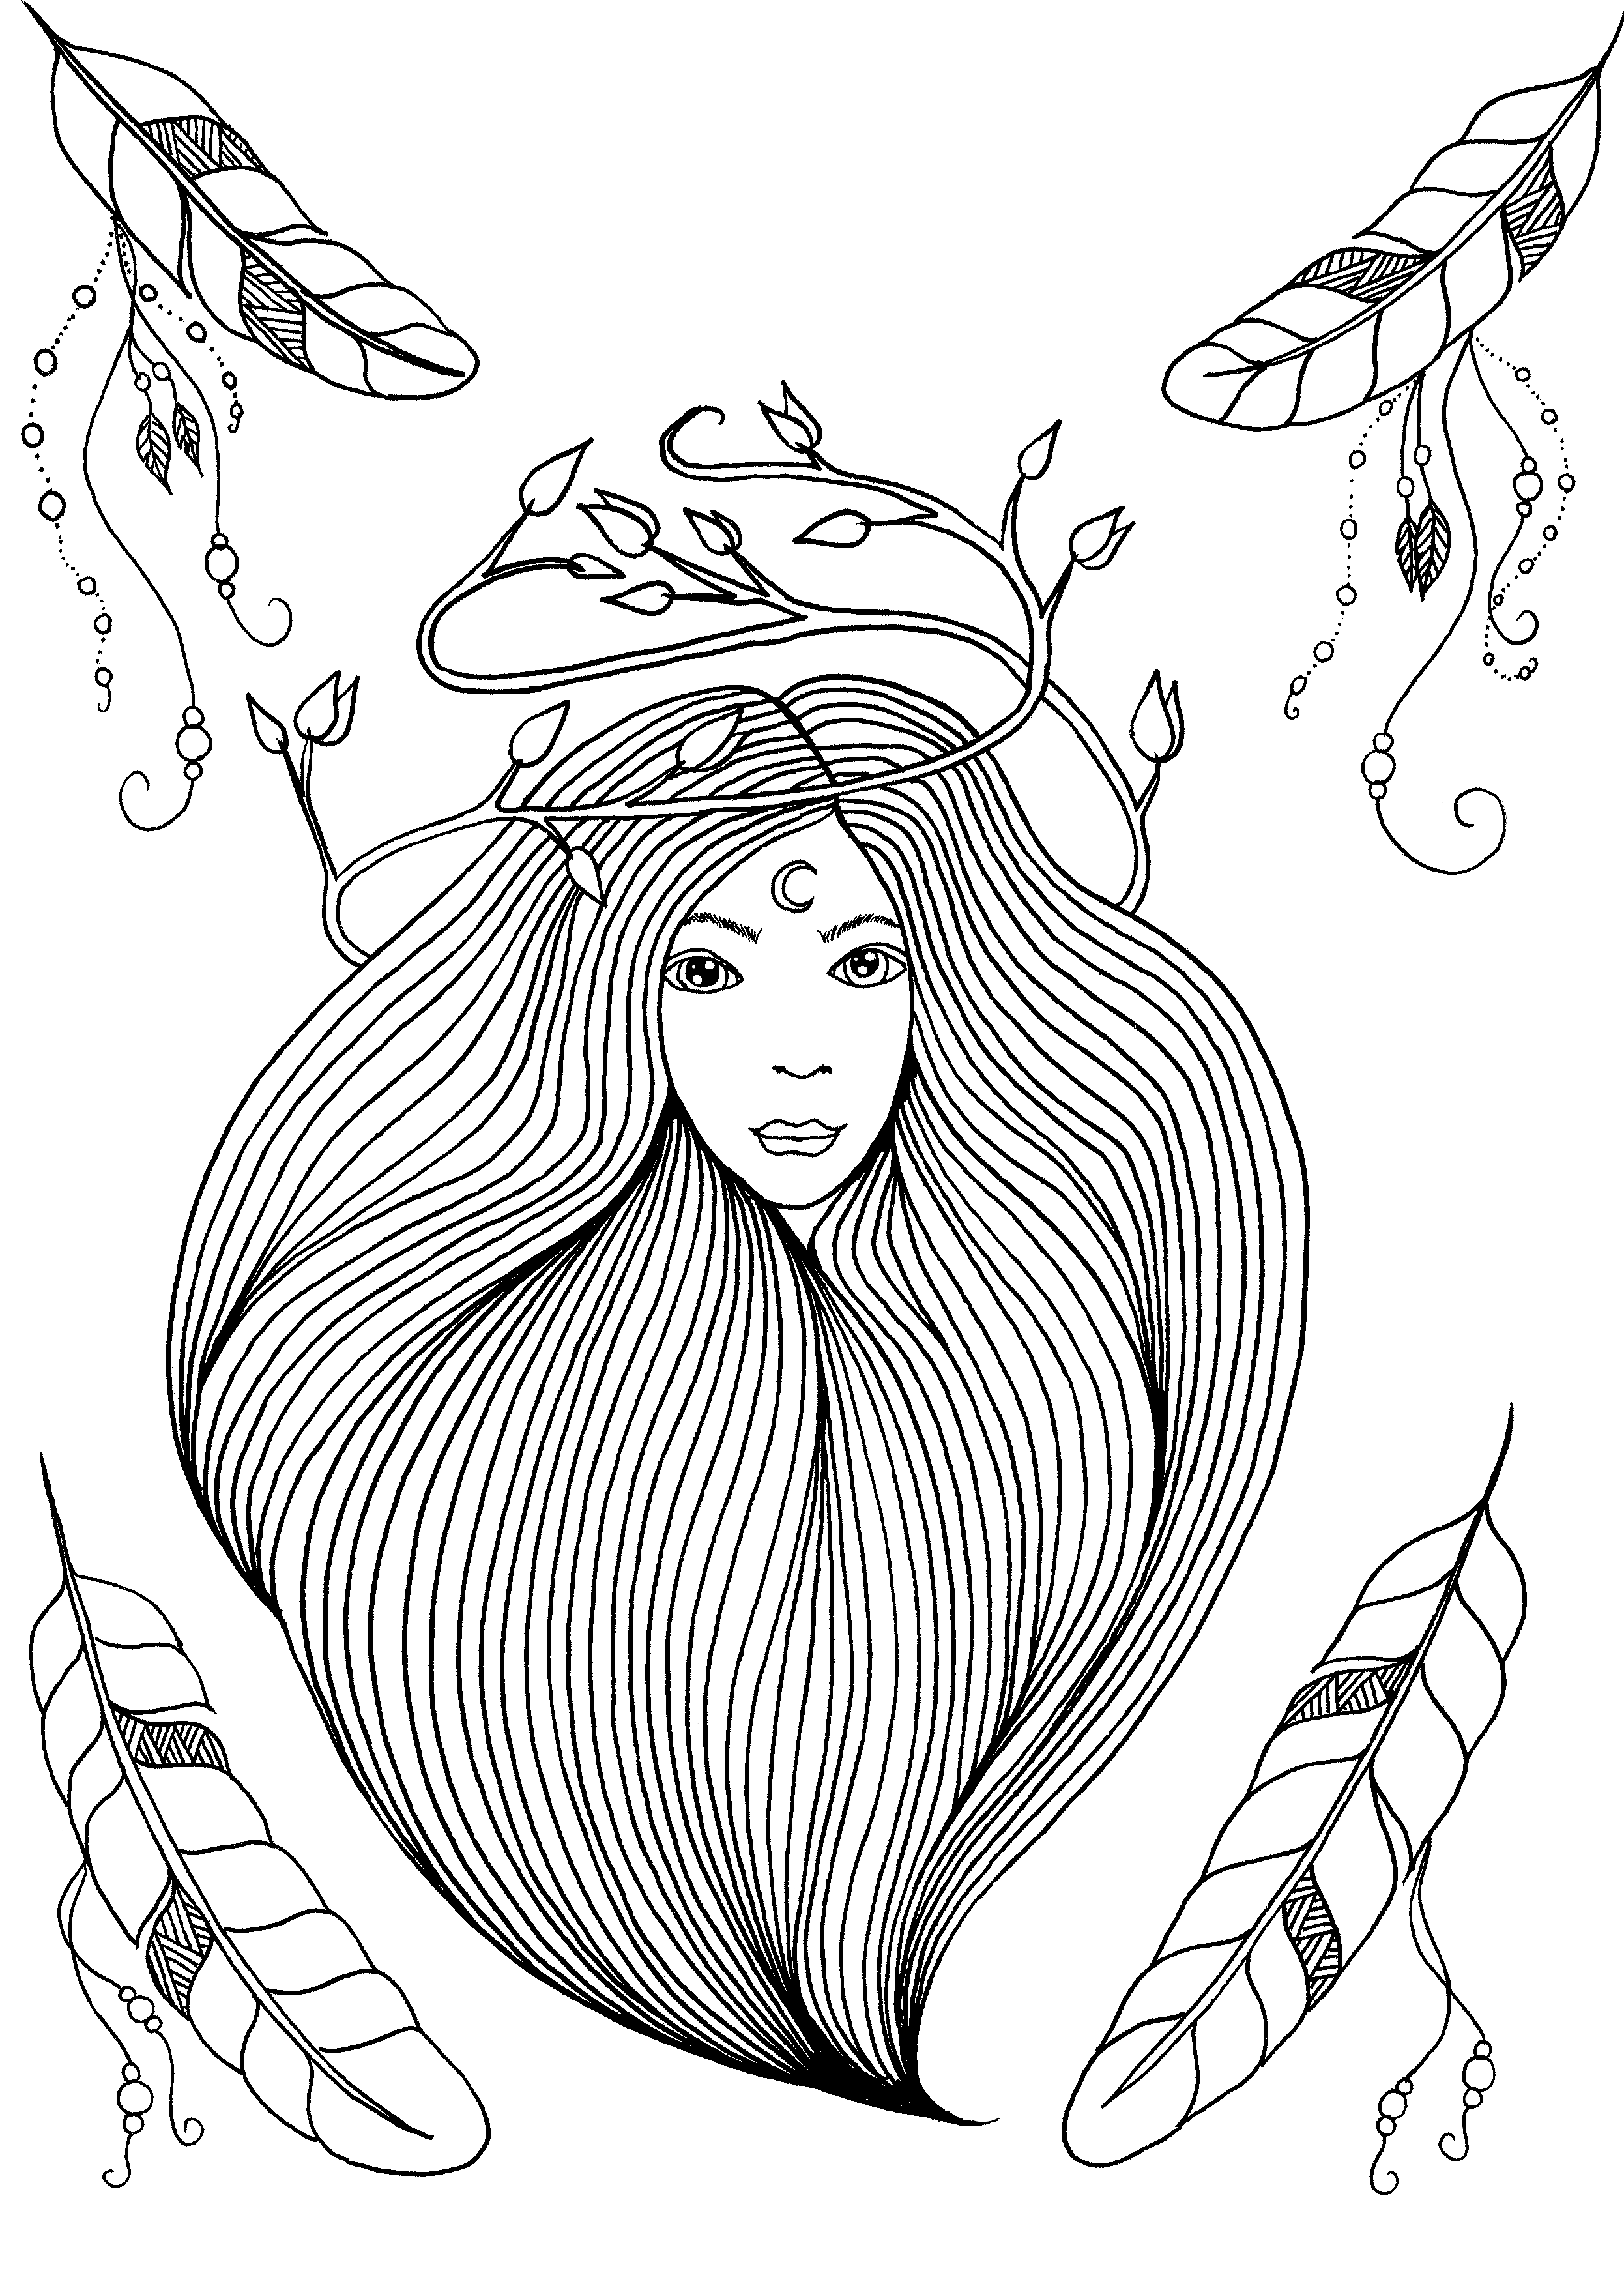 Coloring page of the cover of the Leen Margot's book 'Feathers and Dreams'From the gallery : Zen & Anti StressArtist : Leen Margot